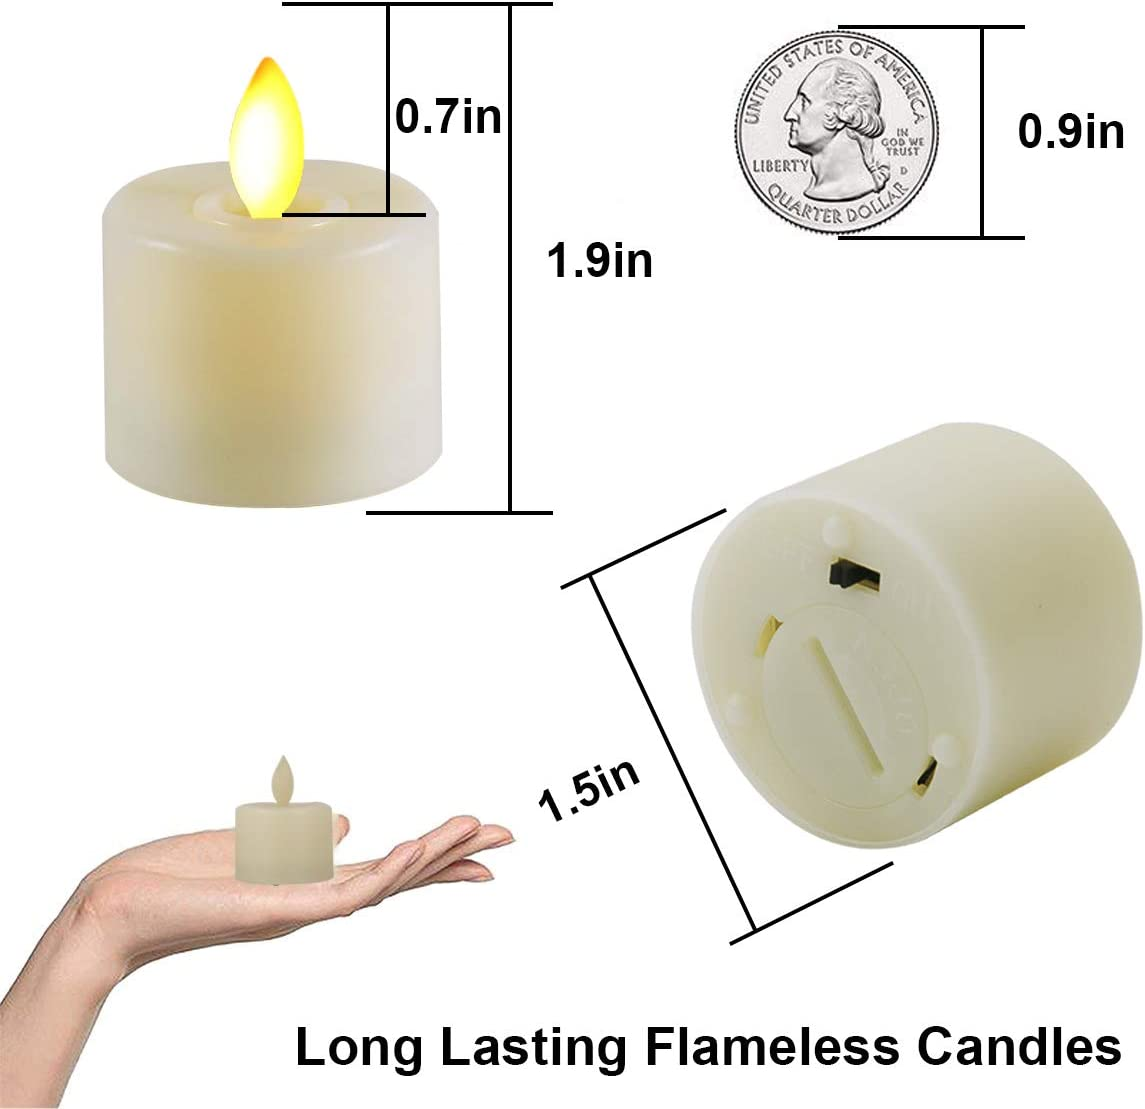 LED Candles Realistic Bright Flickering Moving Wick Electric Tea Lights Candles Battery Operated Flameless LED Tealights for Seasonal Festival Celebration LED Votive Candles Unscented 12 Packs